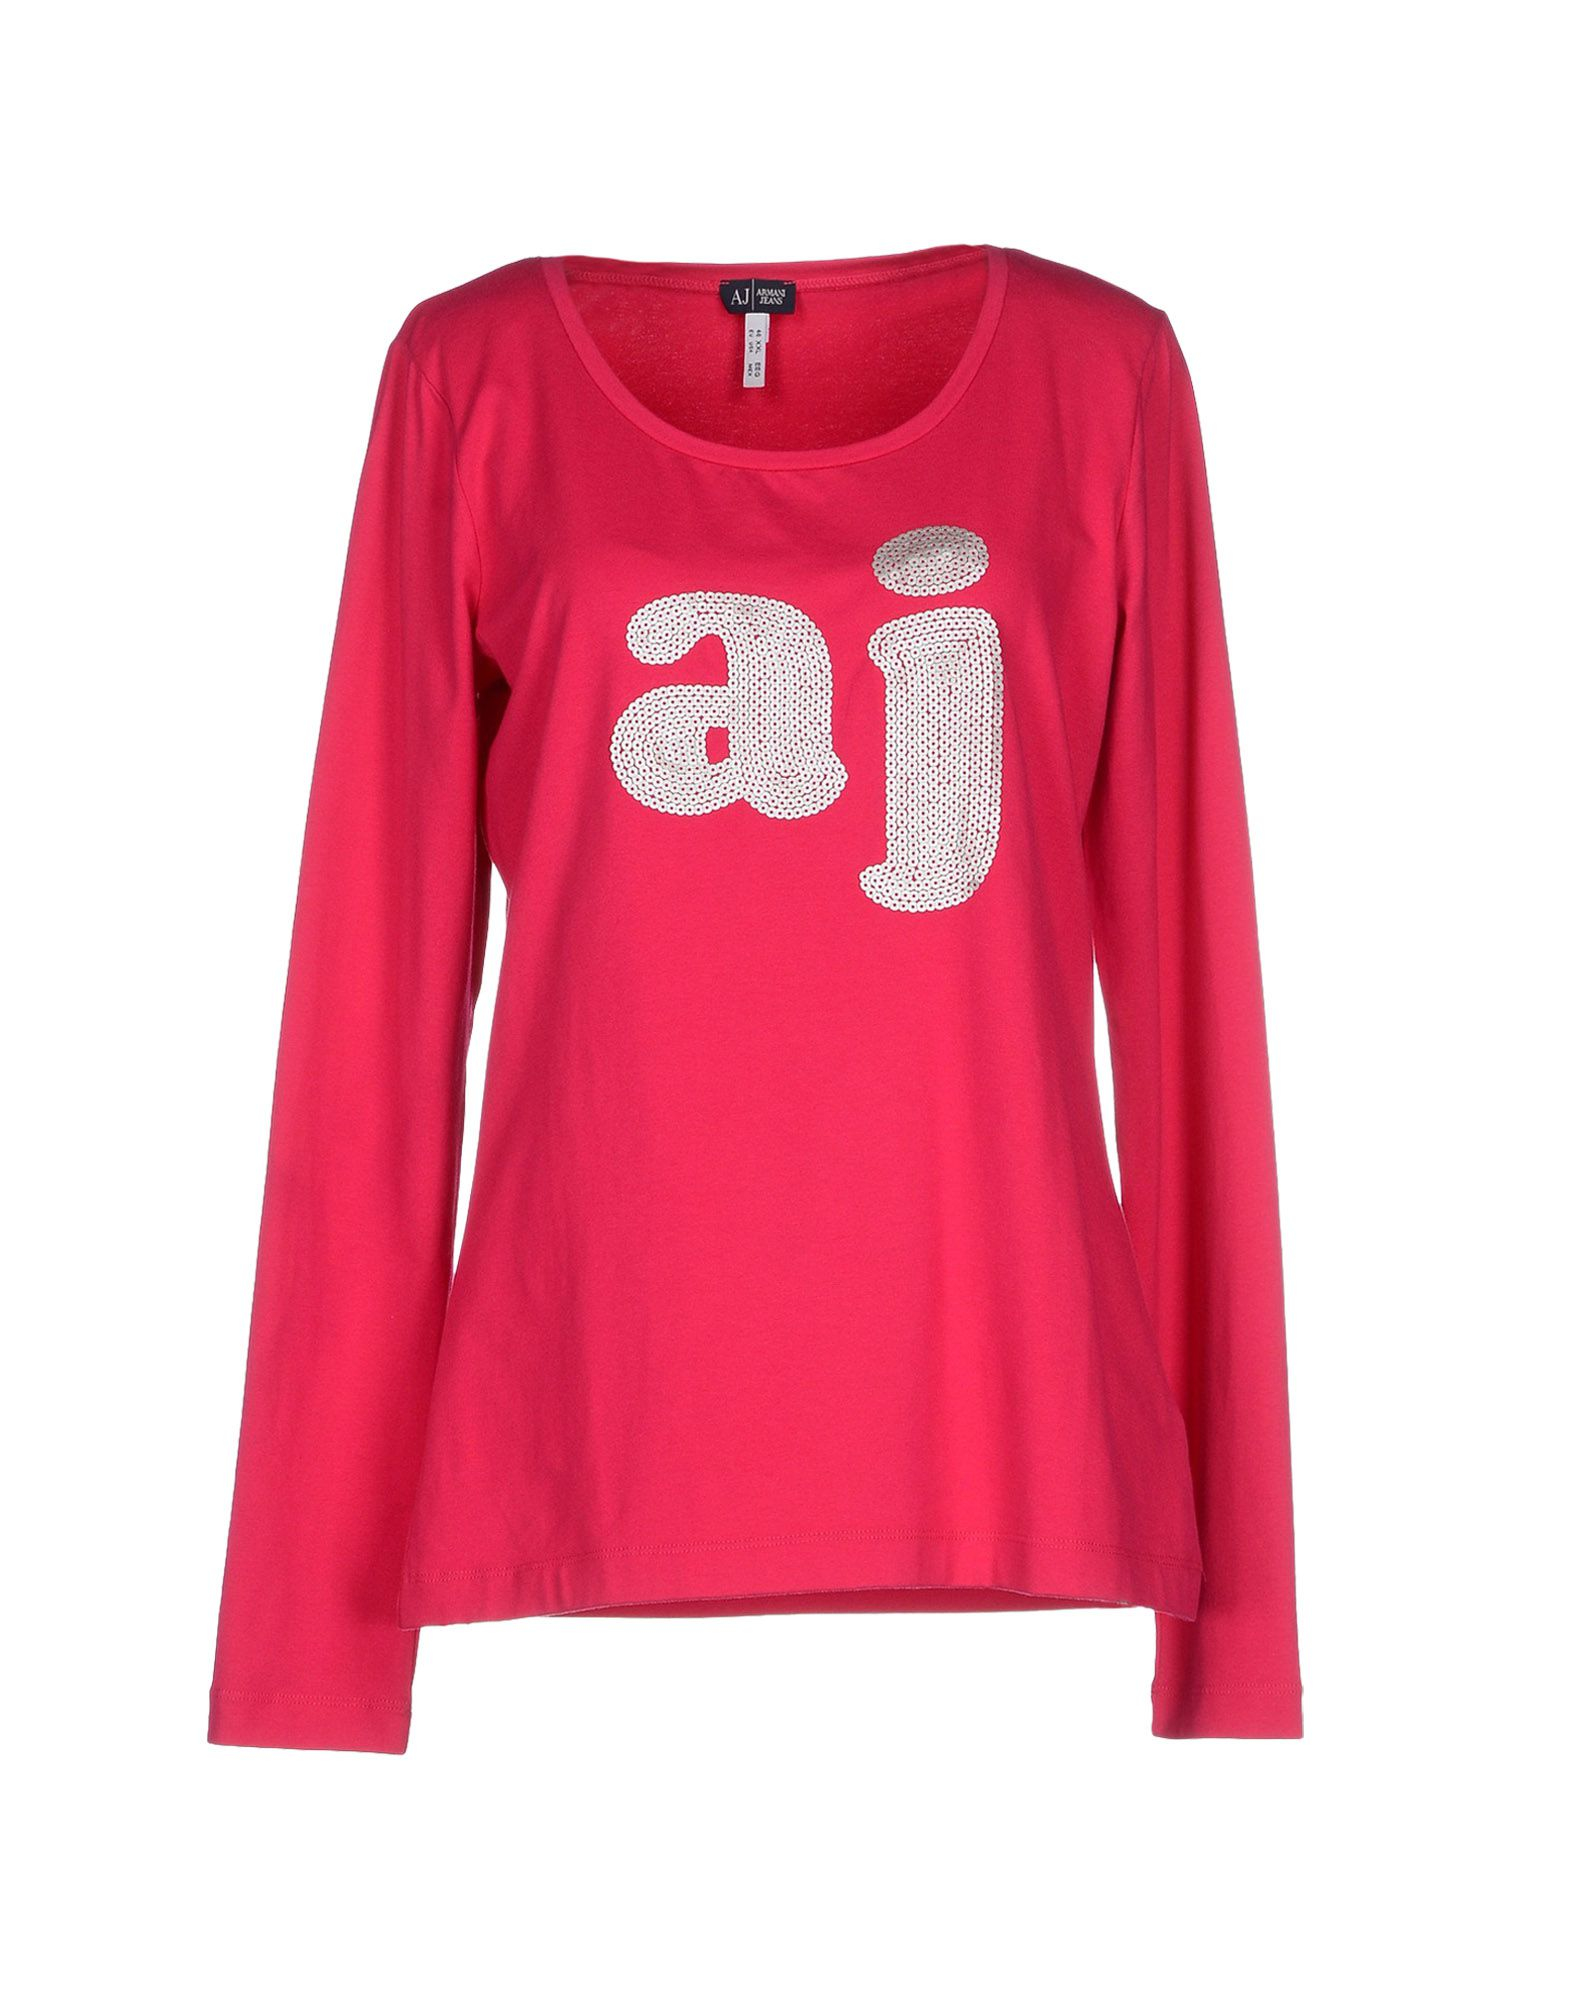 armani jeans t shirt in purple fuchsia lyst. Black Bedroom Furniture Sets. Home Design Ideas